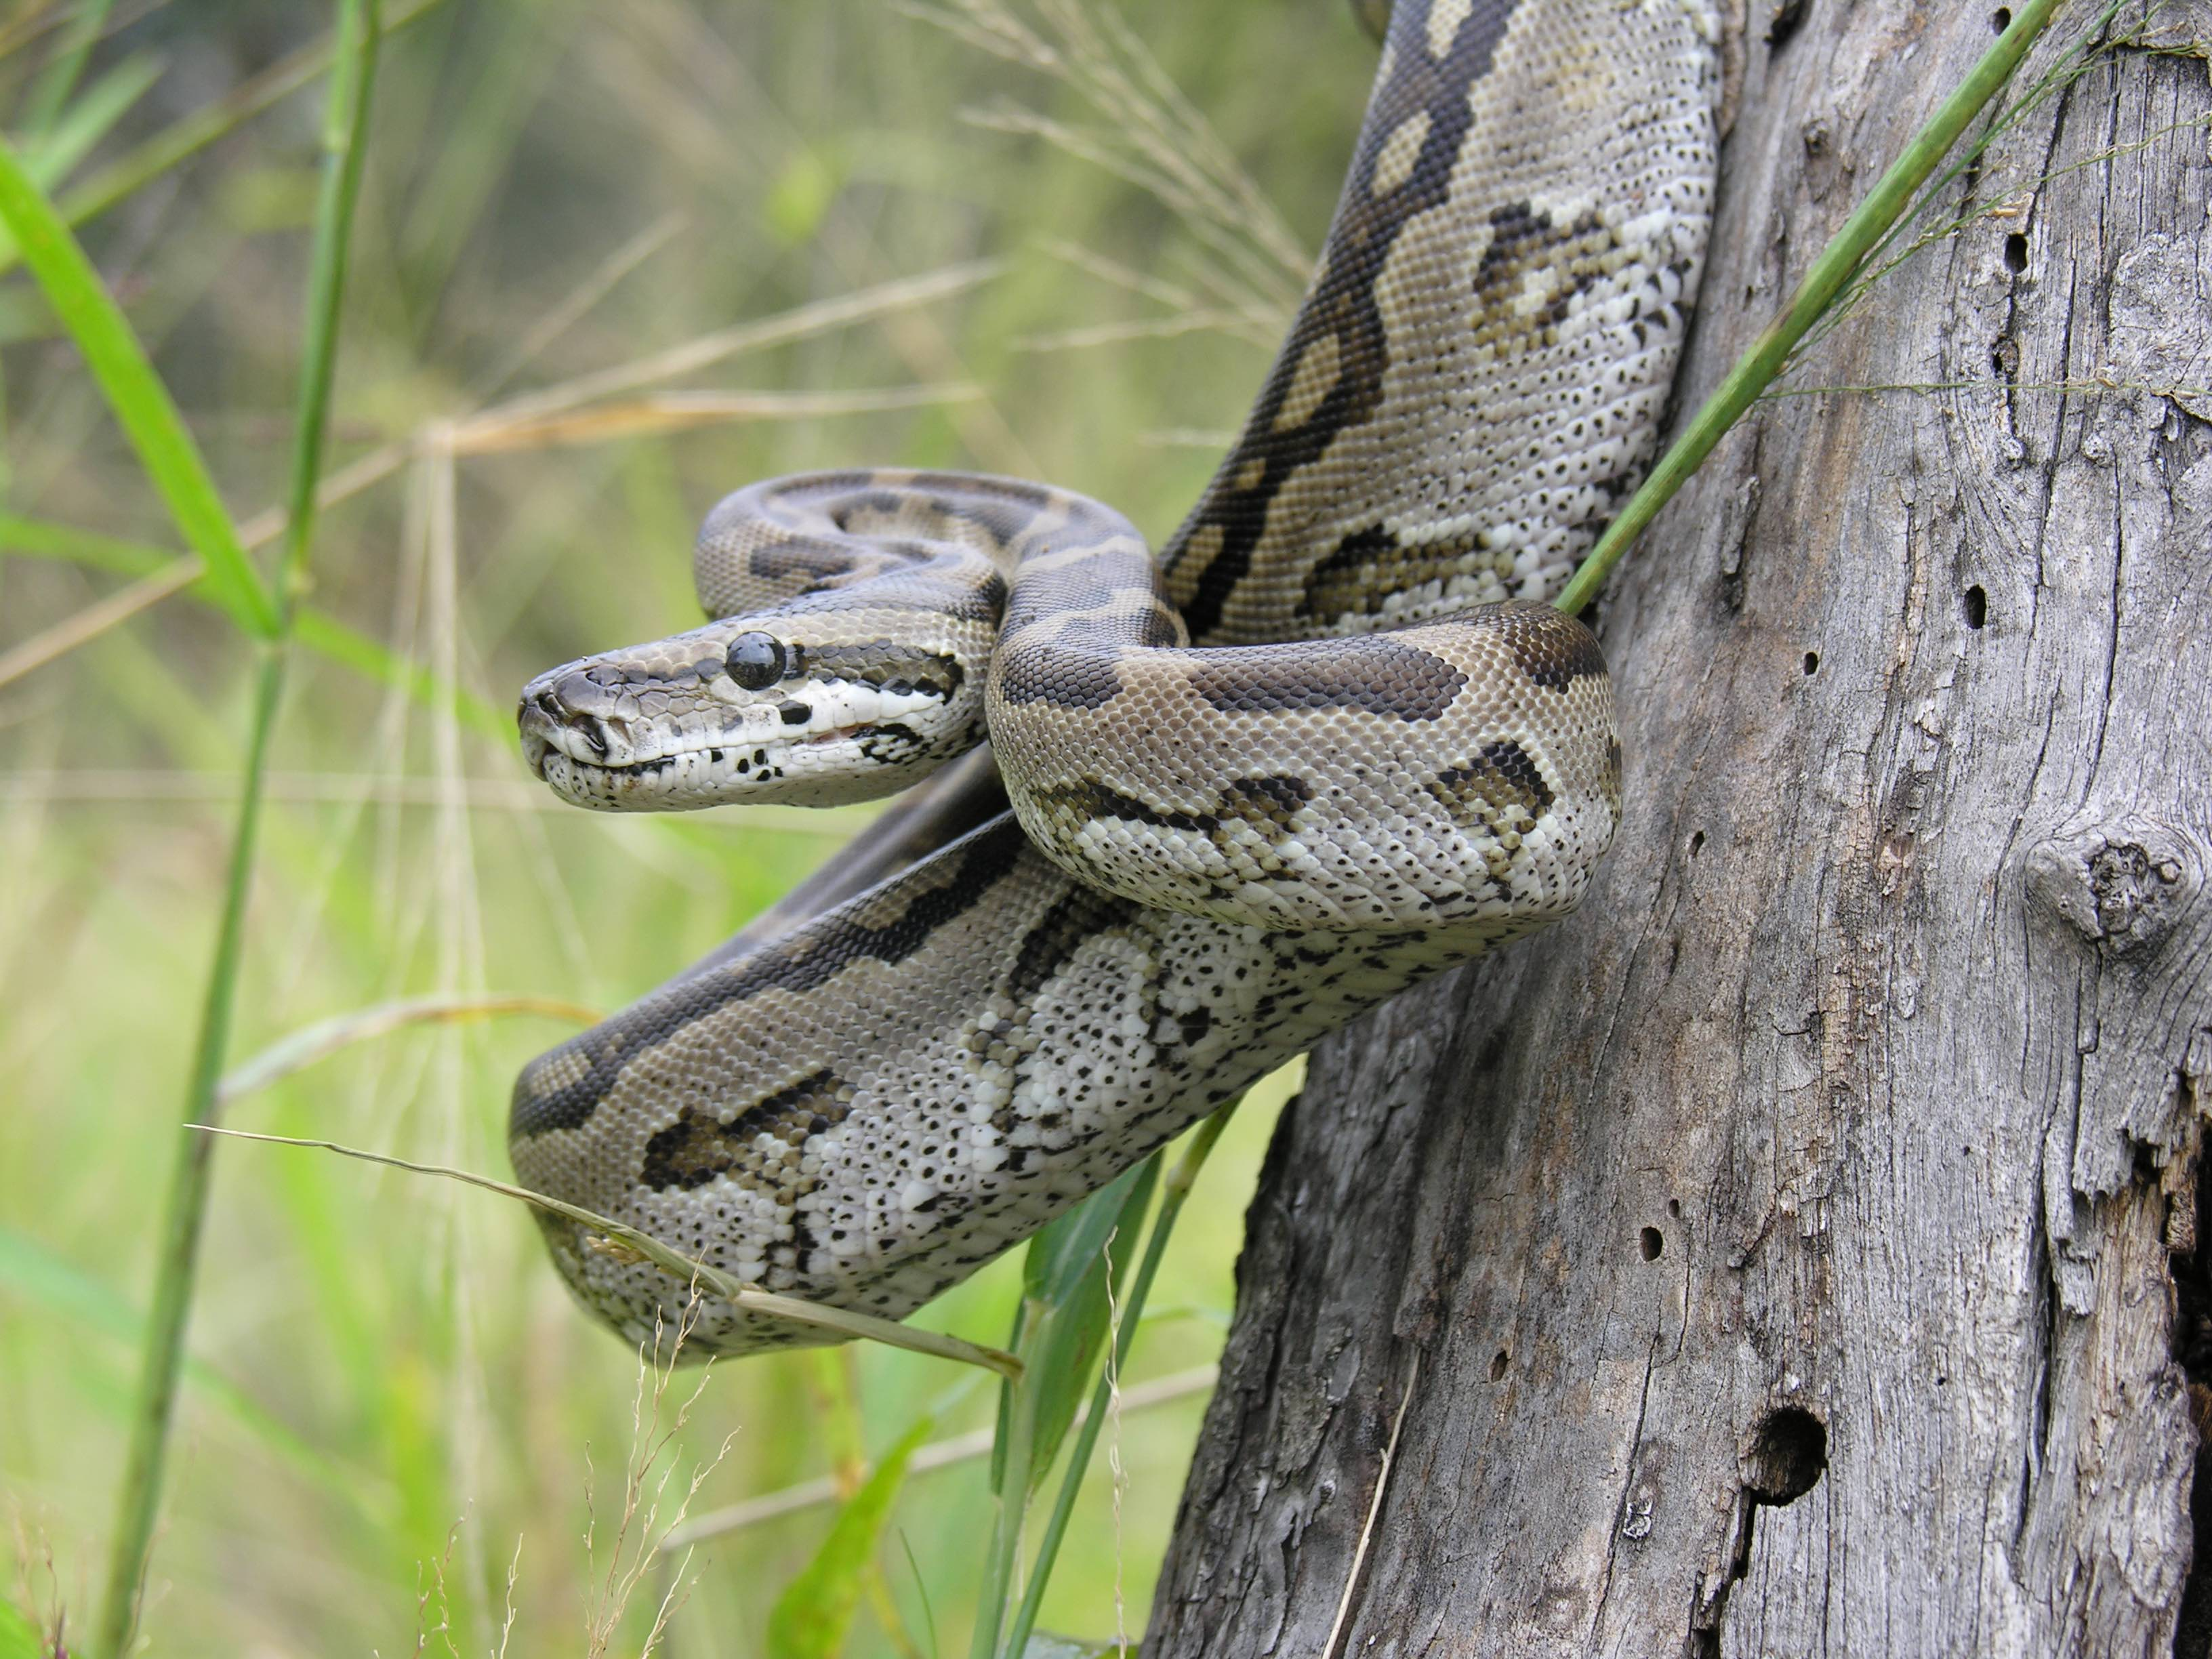 A large southern African python. Source: Author provided